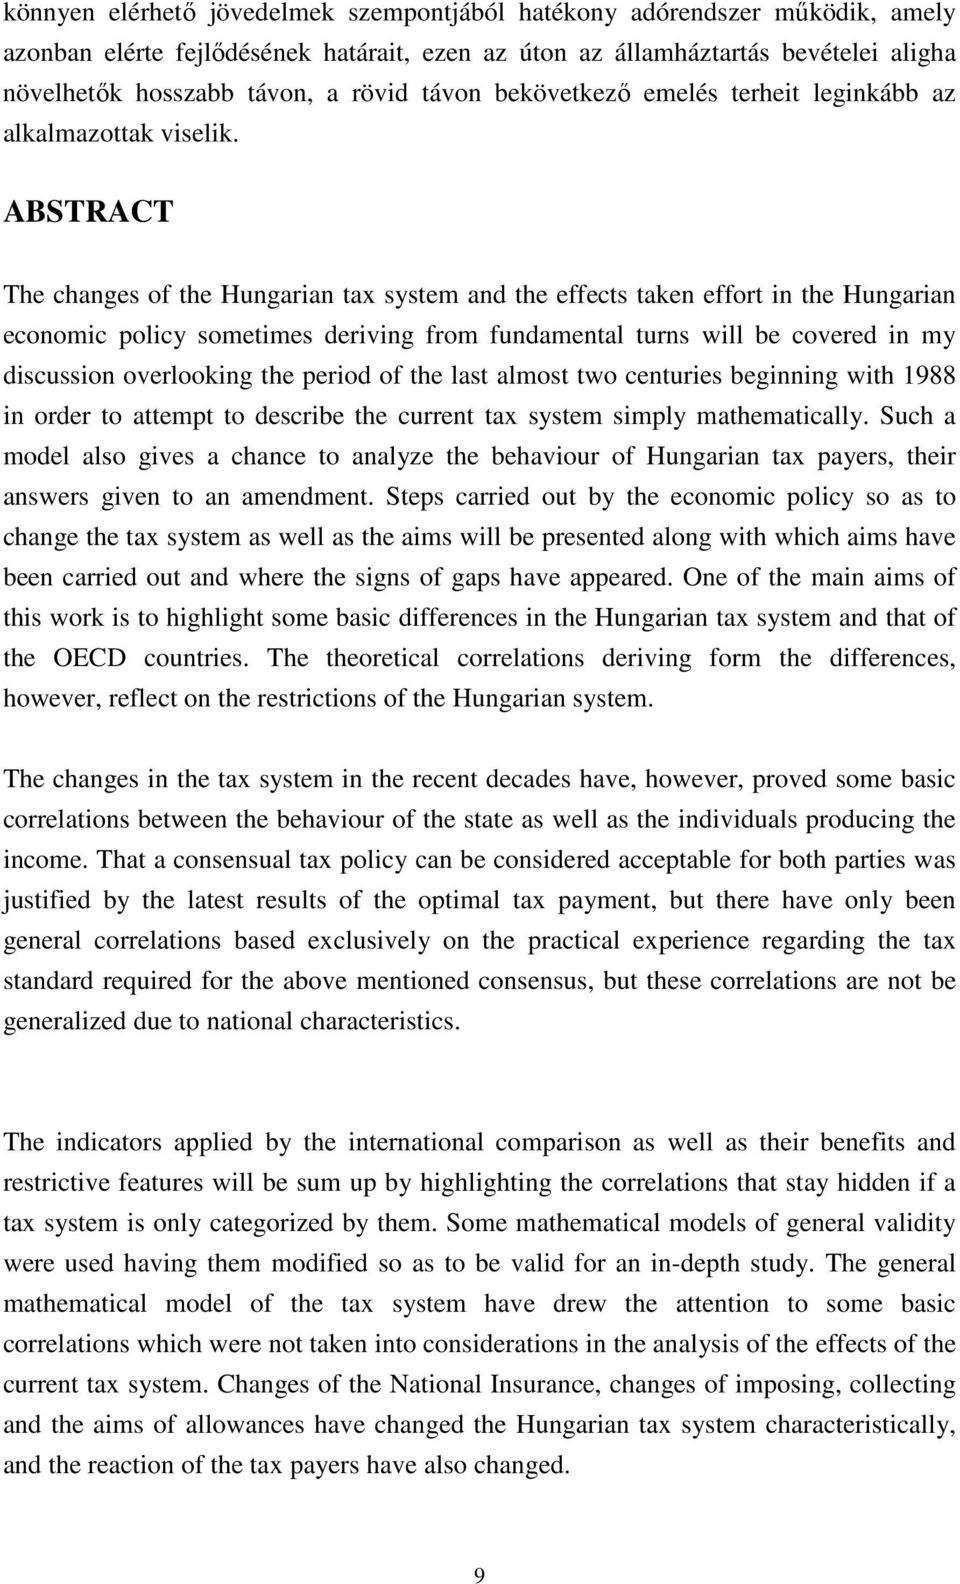 ABSTRACT The changes of the Hungarian tax system and the effects taken effort in the Hungarian economic policy sometimes deriving from fundamental turns will be covered in my discussion overlooking